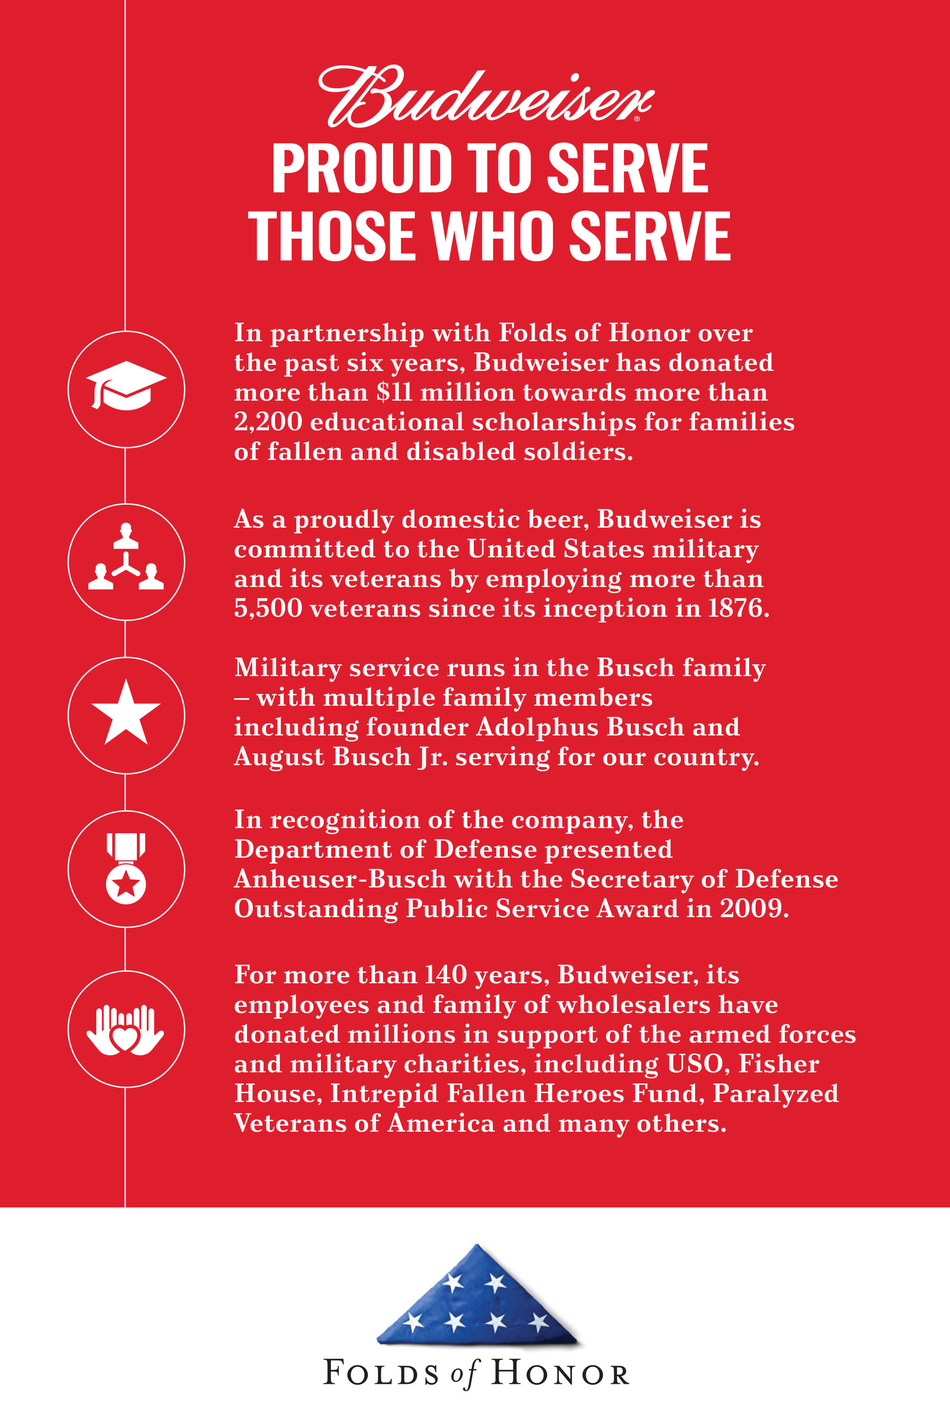 Budweiser is partnering with Folds of Honor for its sixth consecutive year to help raise funds and provide educational scholarships to families of fallen and disabled soldiers.